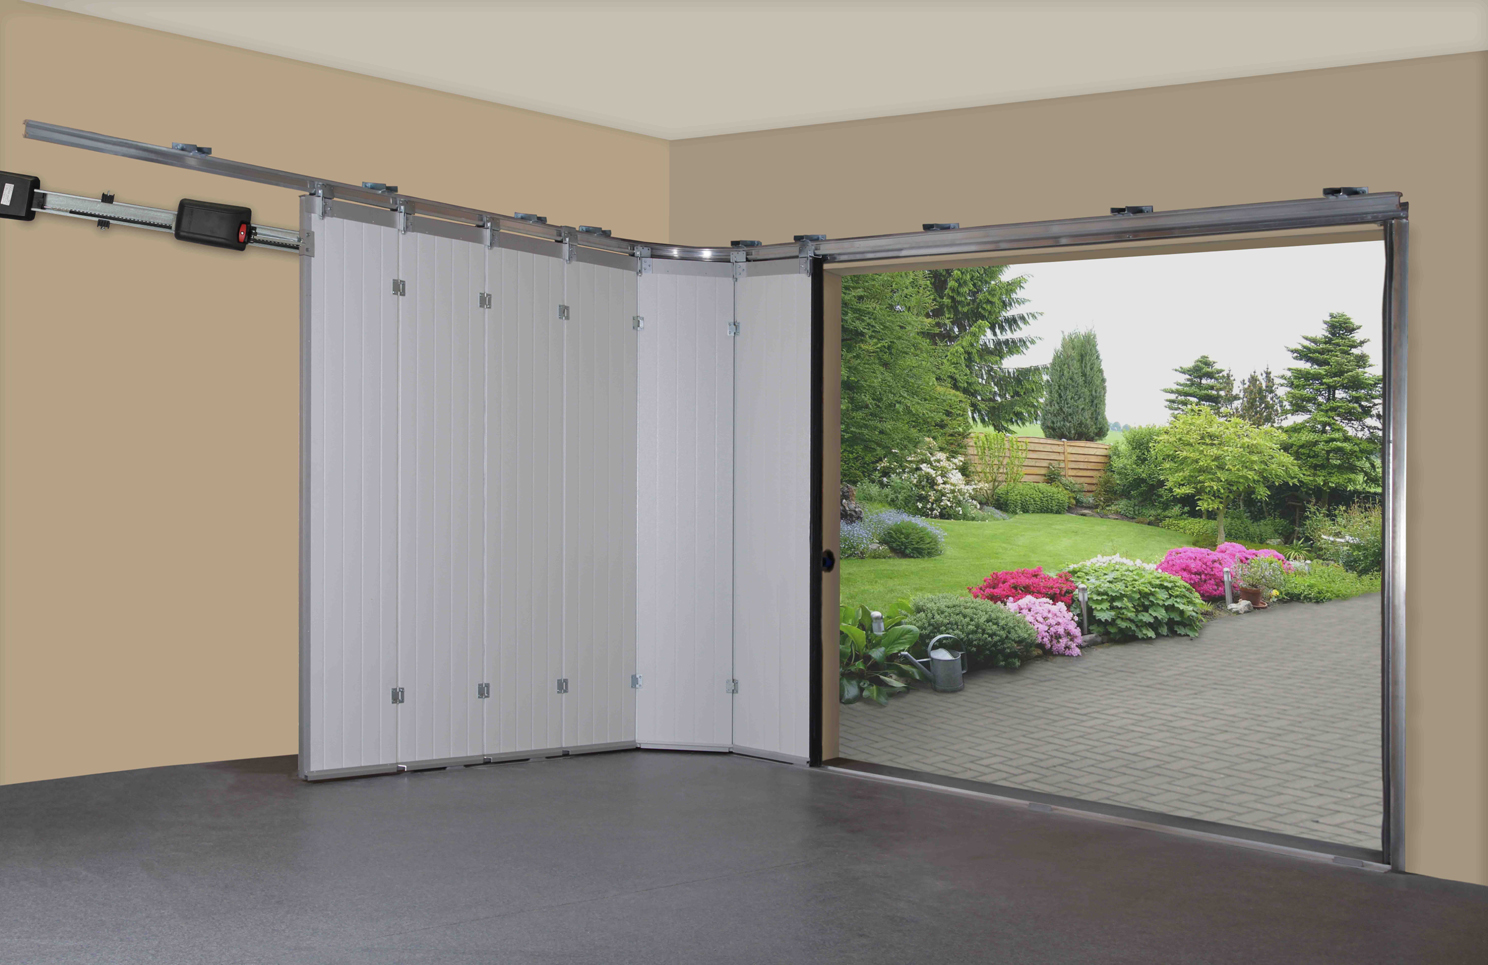 965 #728A41 Side Sliding Doors Ryterna Garage Doors wallpaper Garage Doors Electric Opening 36051488